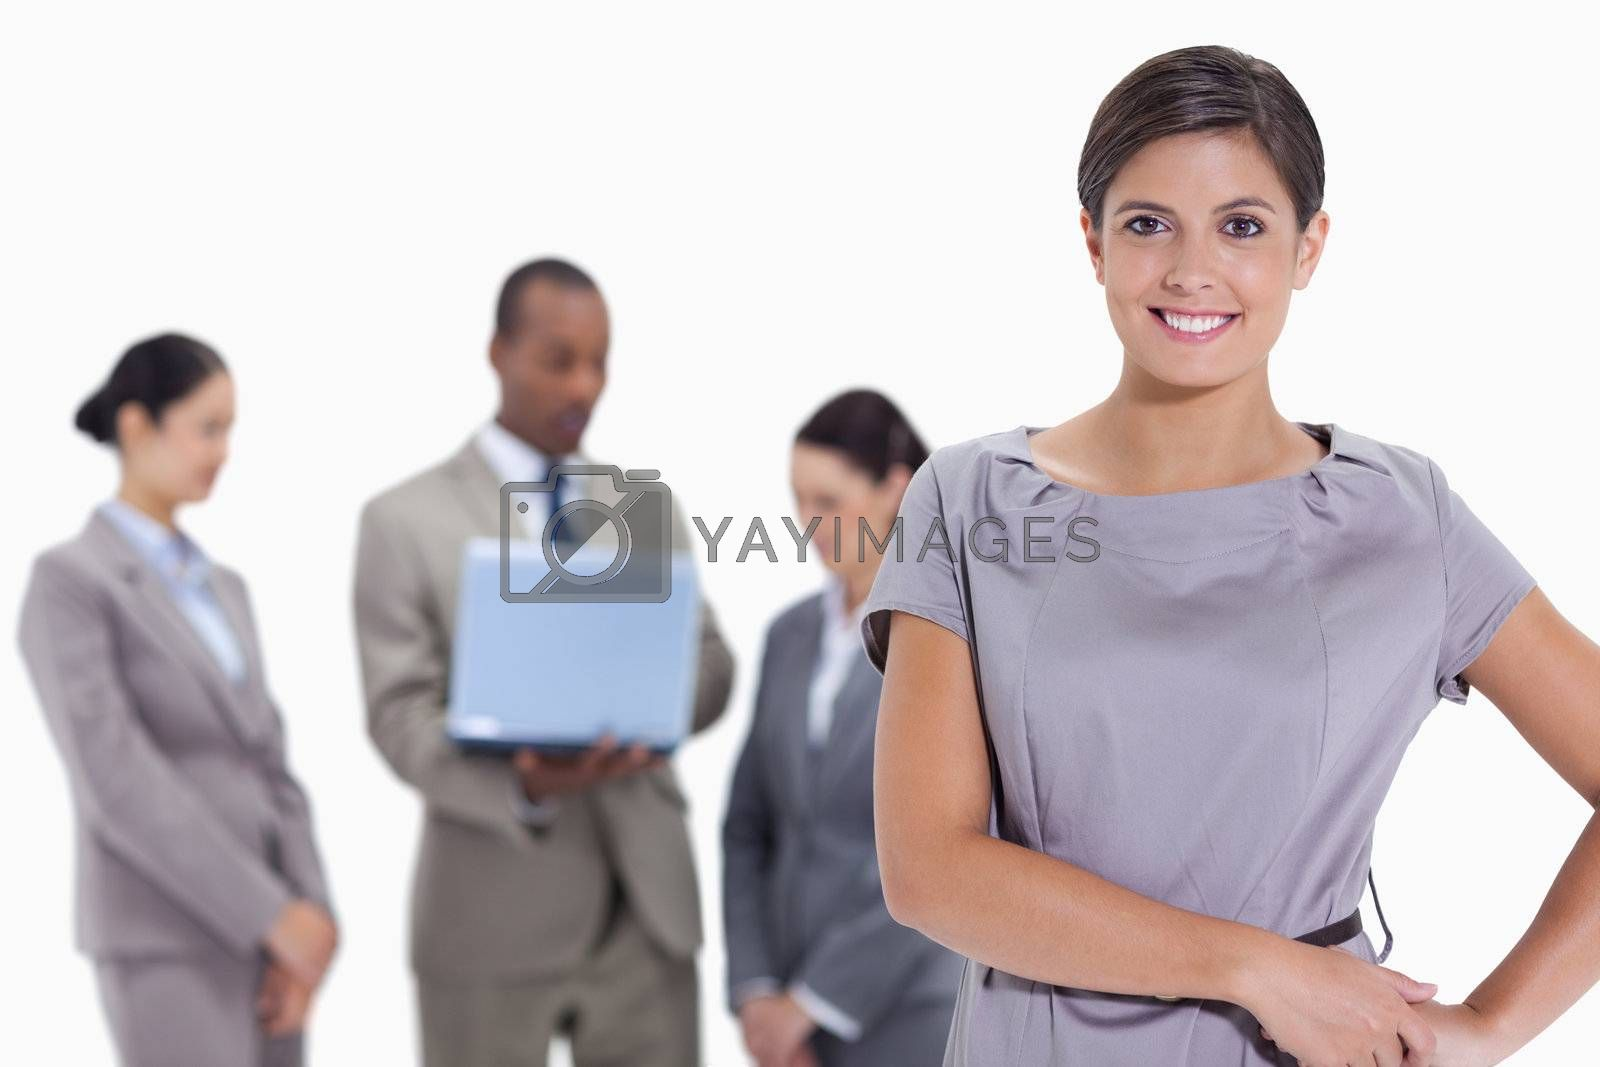 Woman with hands on her hips with business team in the background against white background